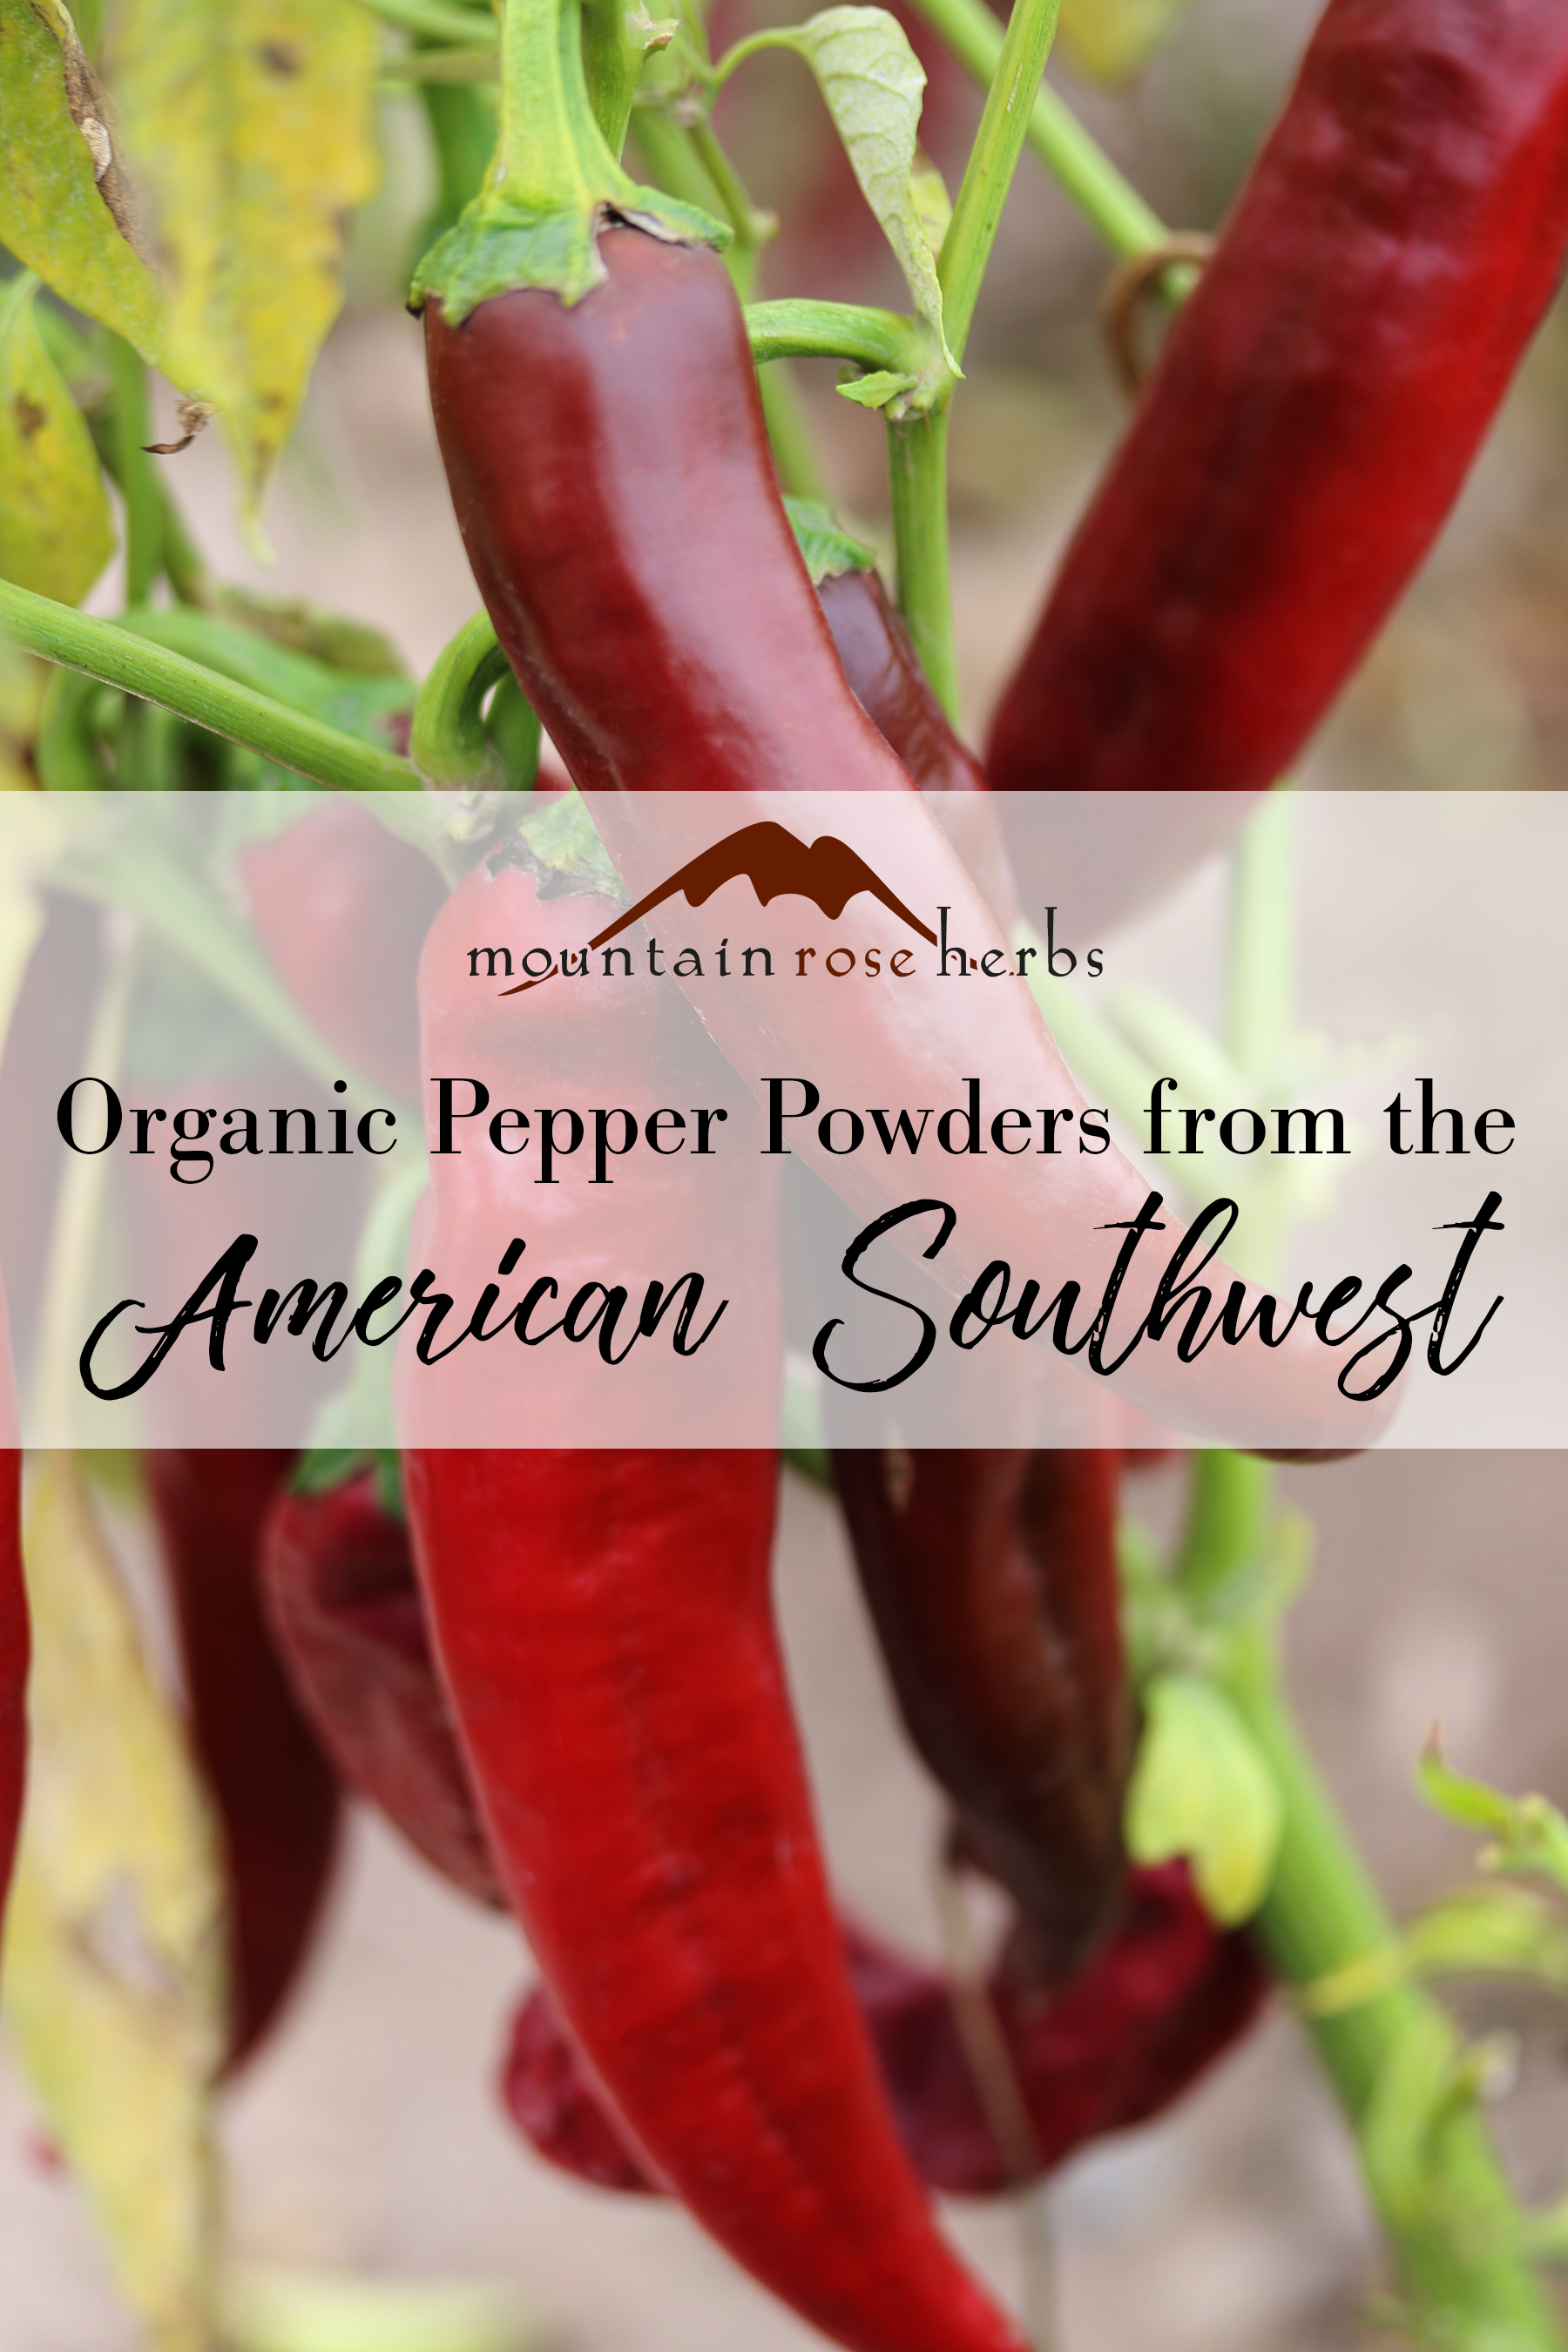 Pin to Organic Pepper Powders from the American Southwest